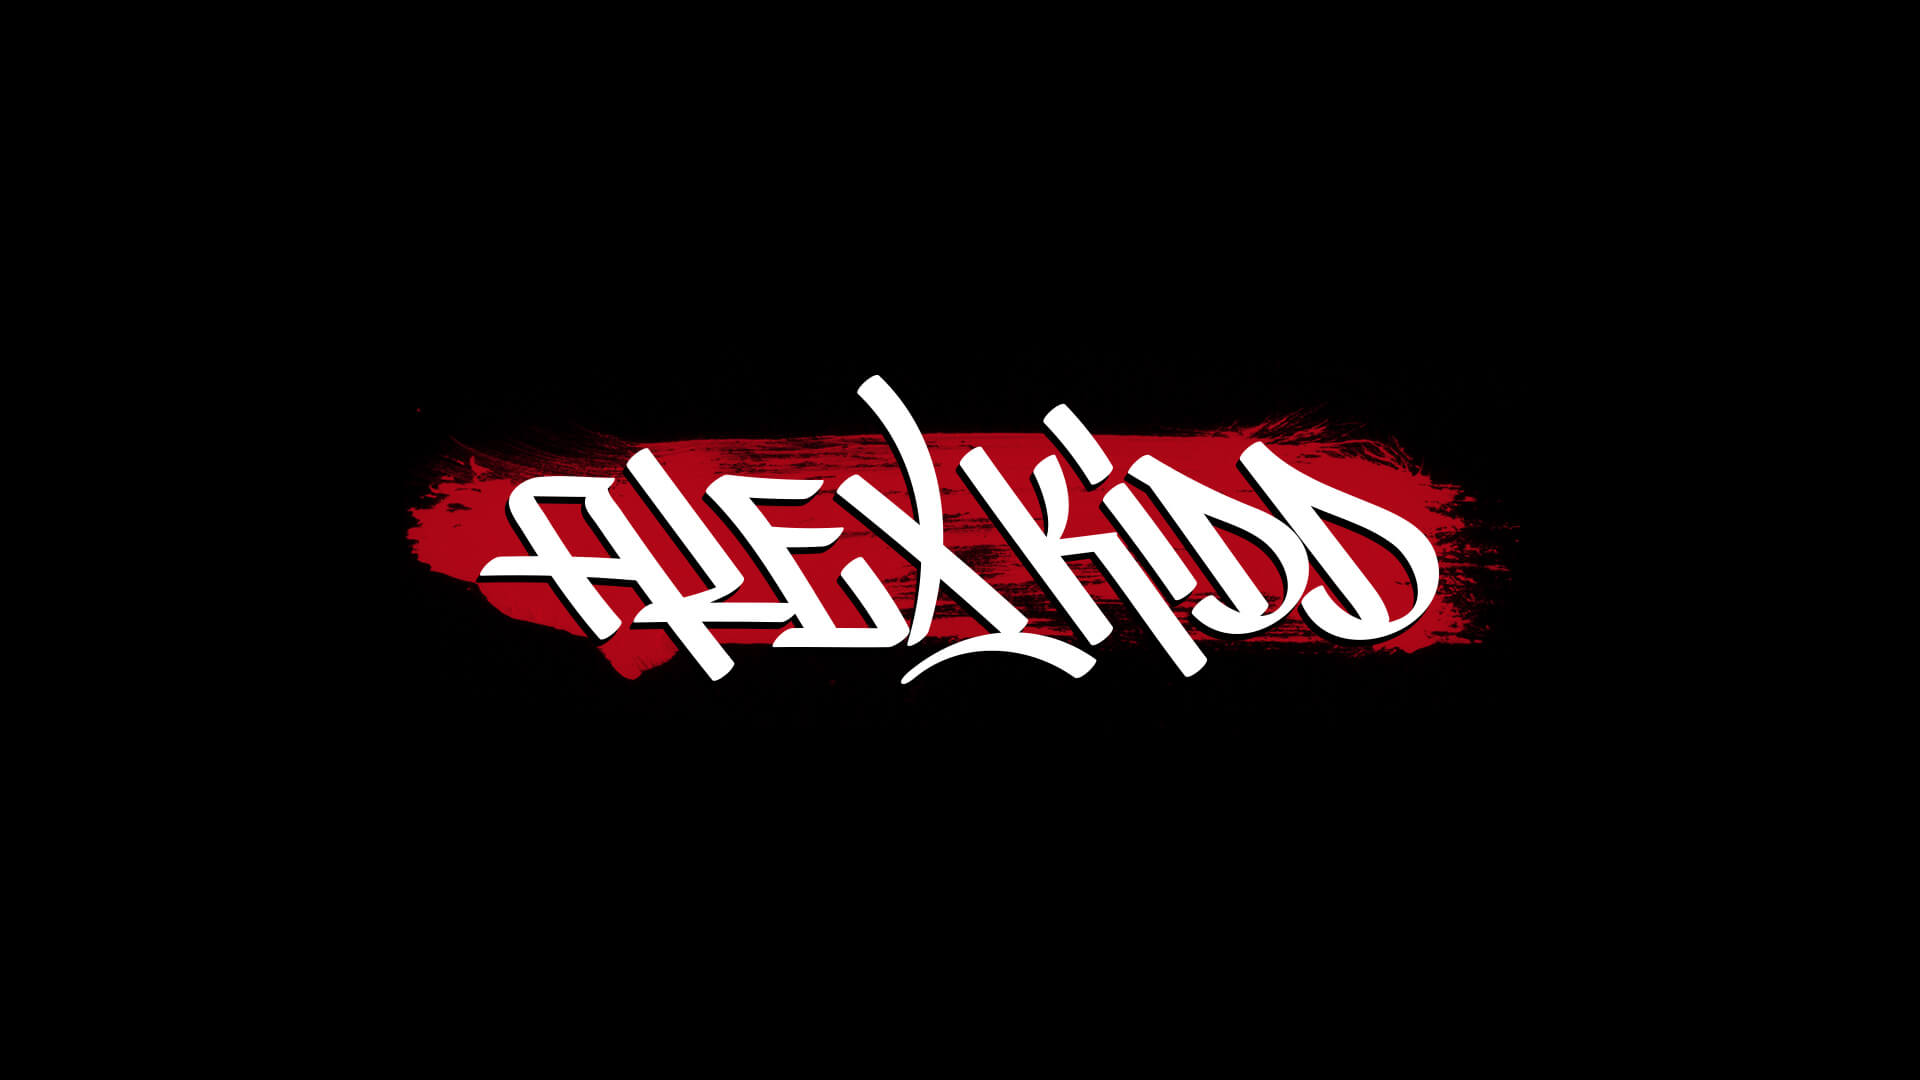 bandits-tag-graffitti-hiphop-breackdance-Alexkidd